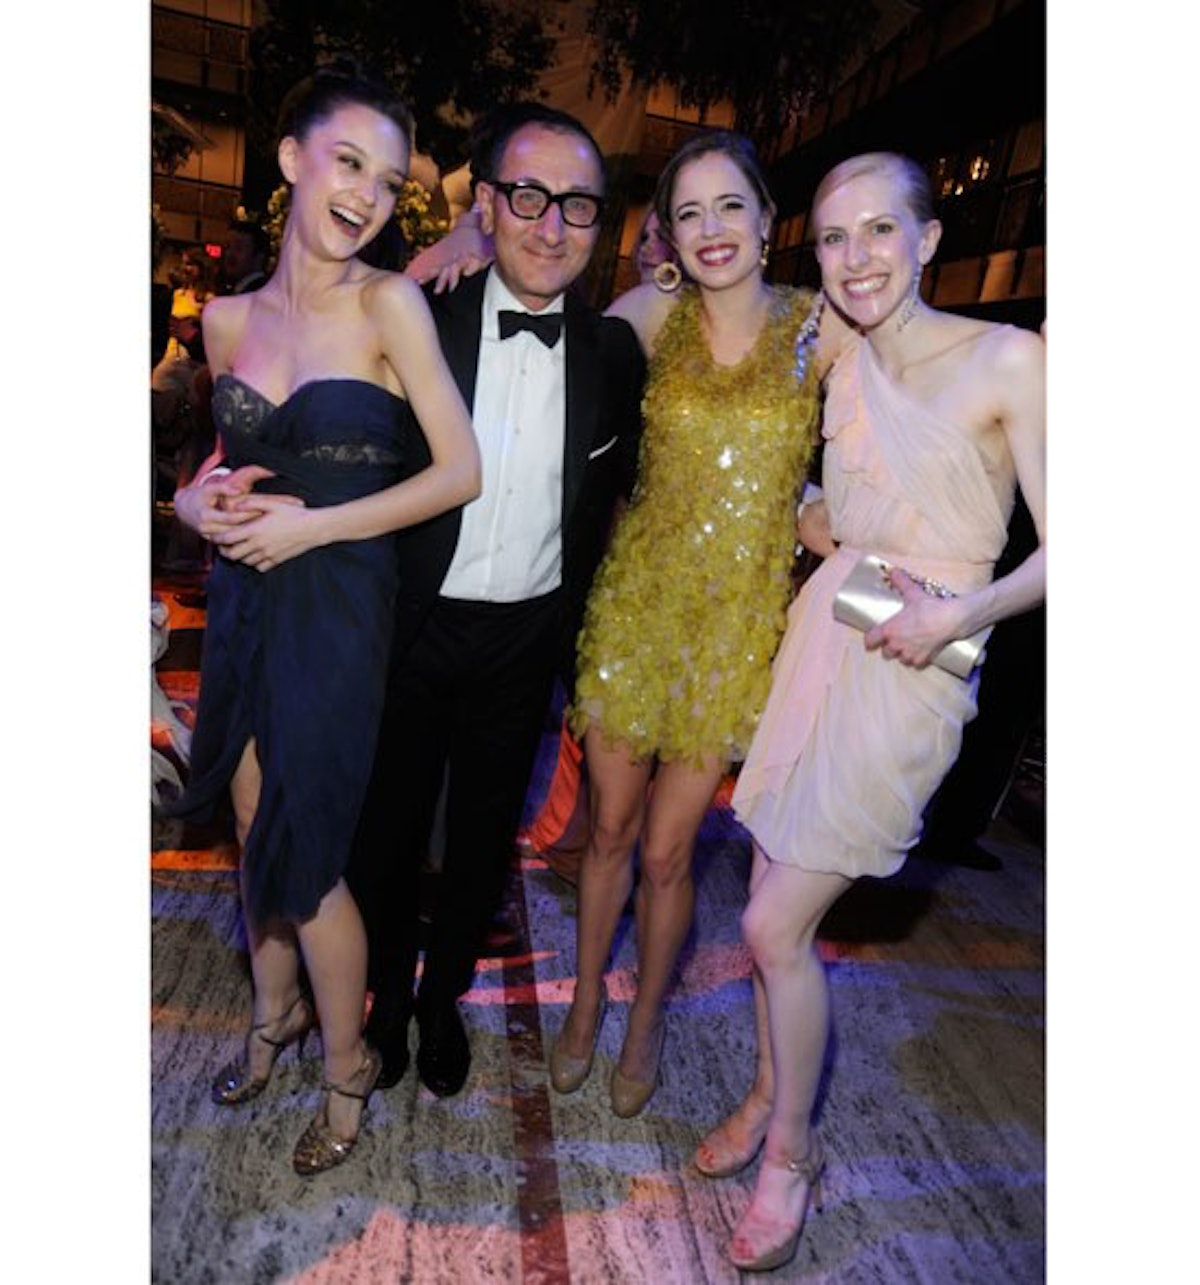 blog-nycb-Giles-Mendel-and-Ashley-Isaacs-%28center%29-with-NYC-Ballet-Dancers-%28Wearing-Giles-Mendel%29.jpg